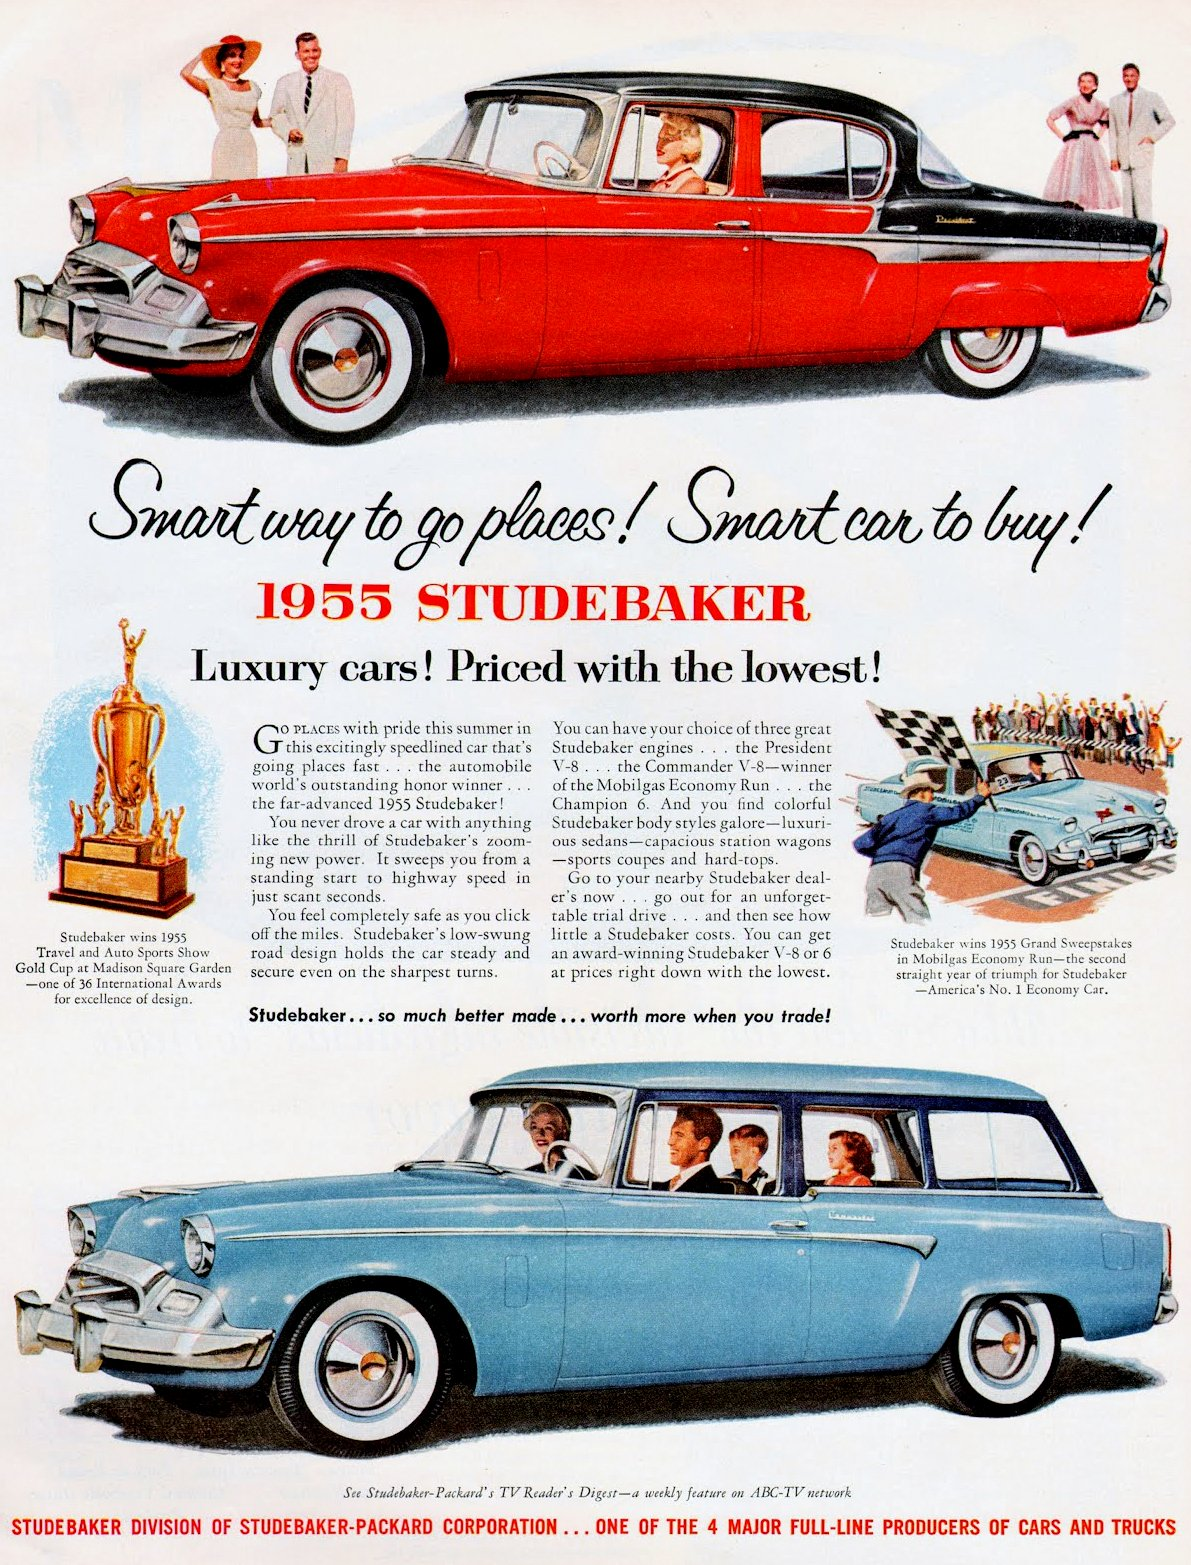 1955 Studebaker Luxury cars - priced with the lowest!